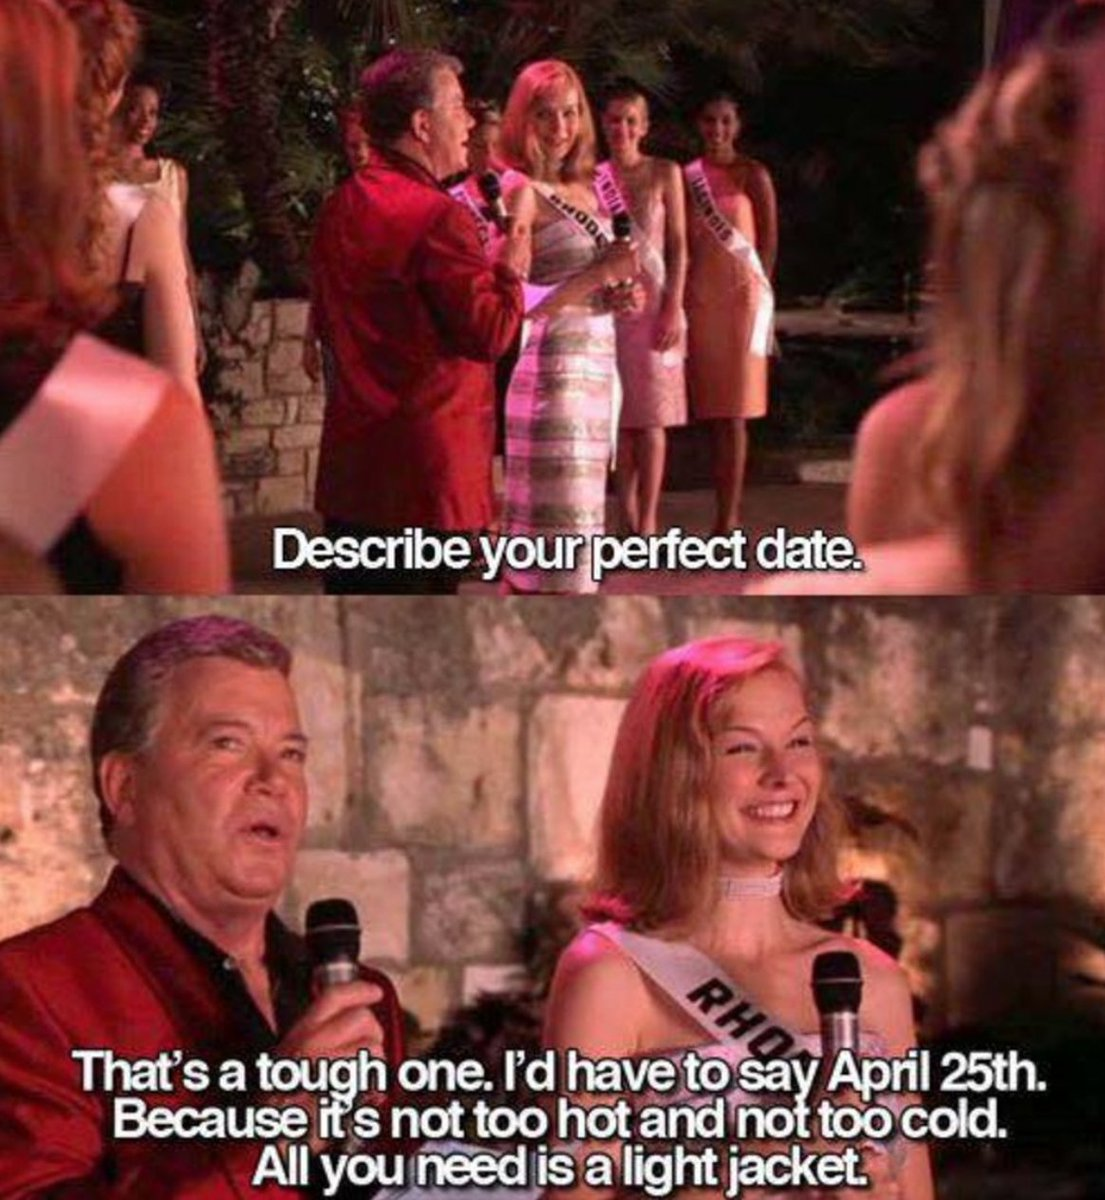 Today's April 25th — the perfect date.